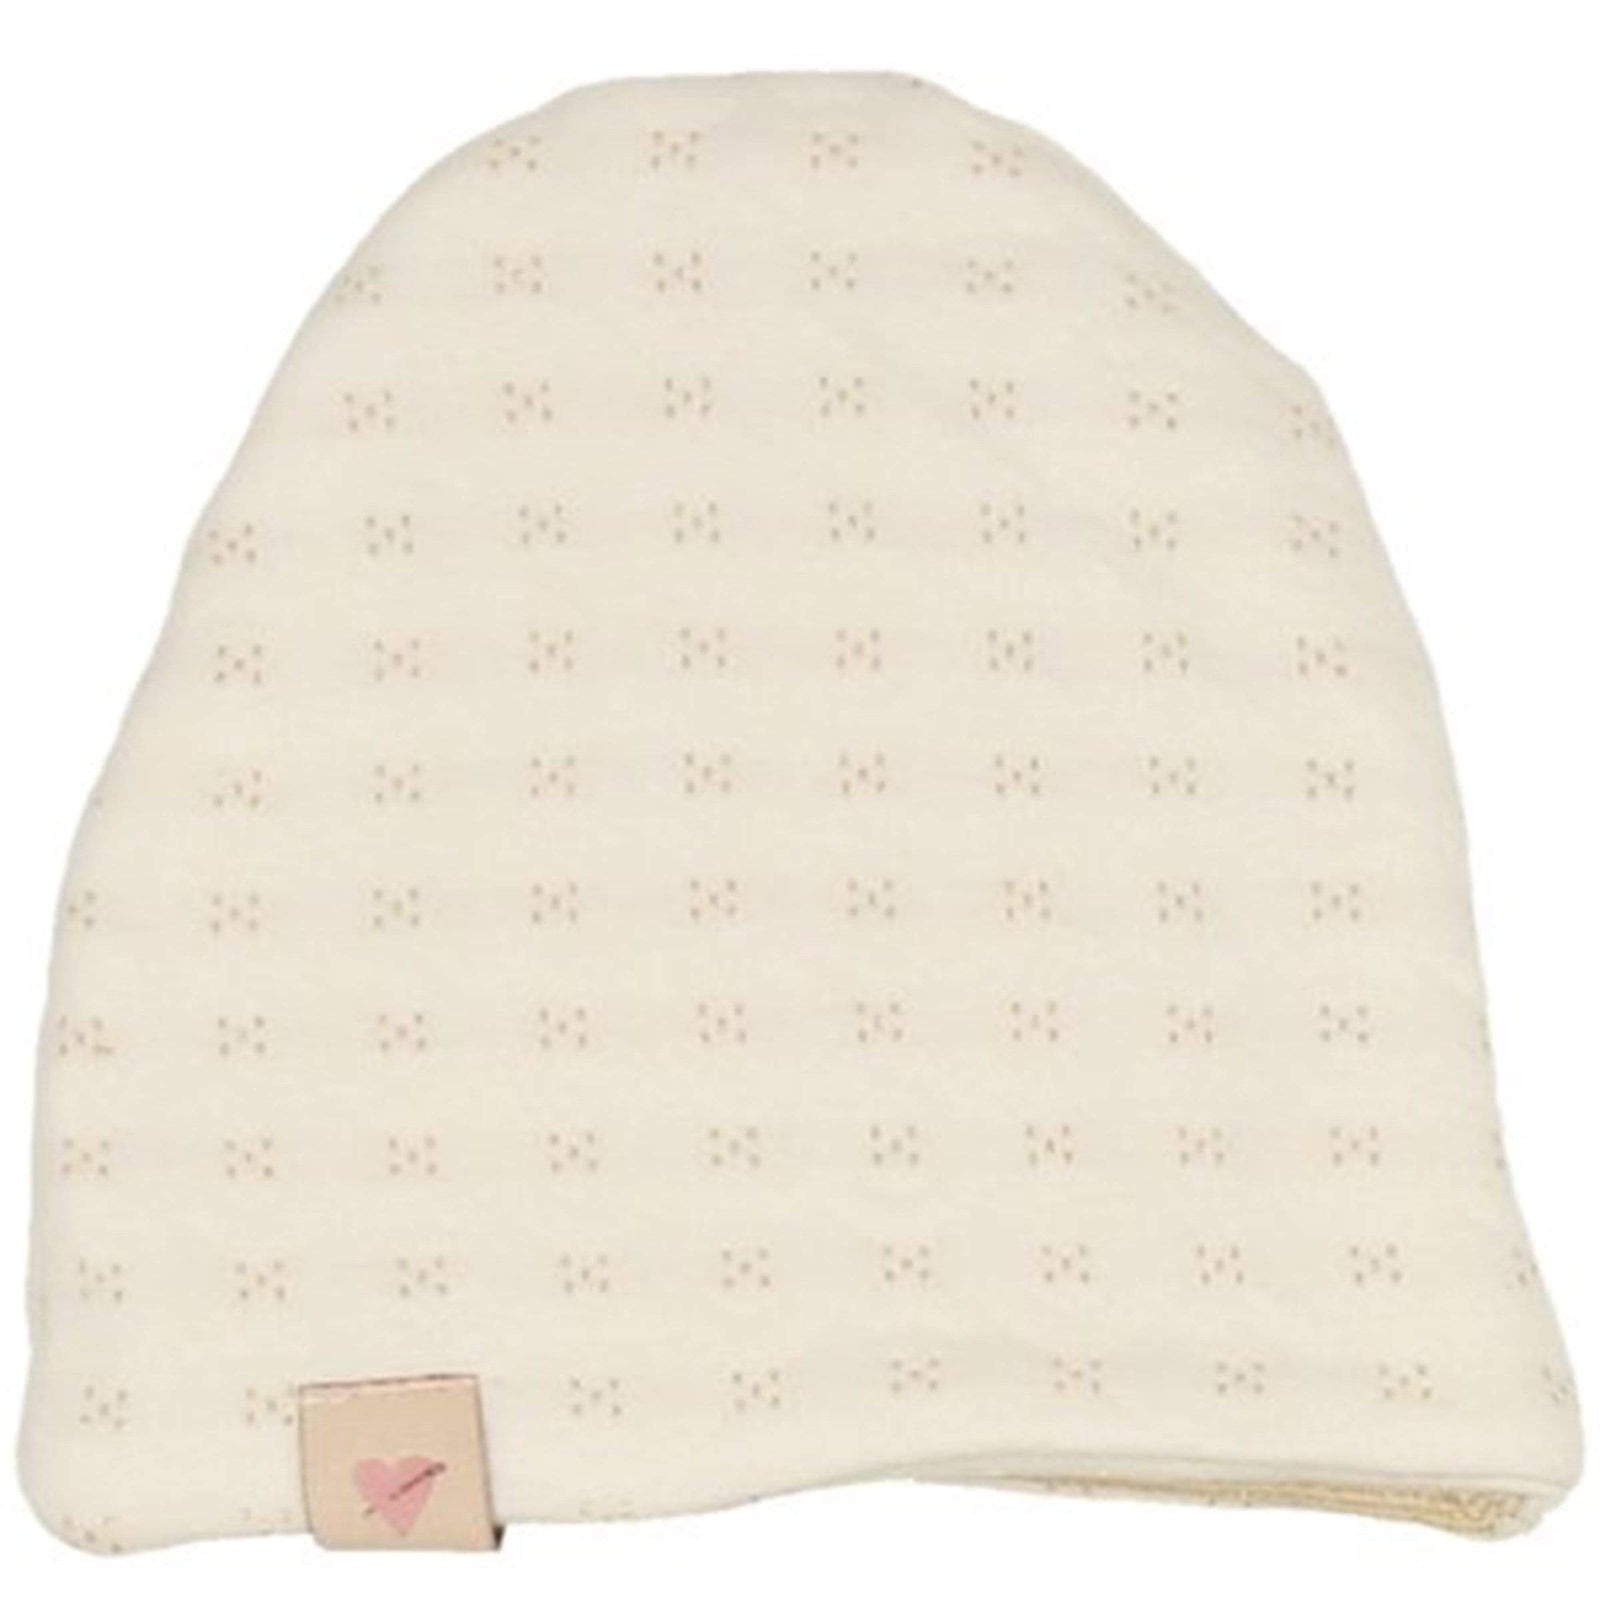 Mon Tresor Bebe Child Diamond Quilted Hat